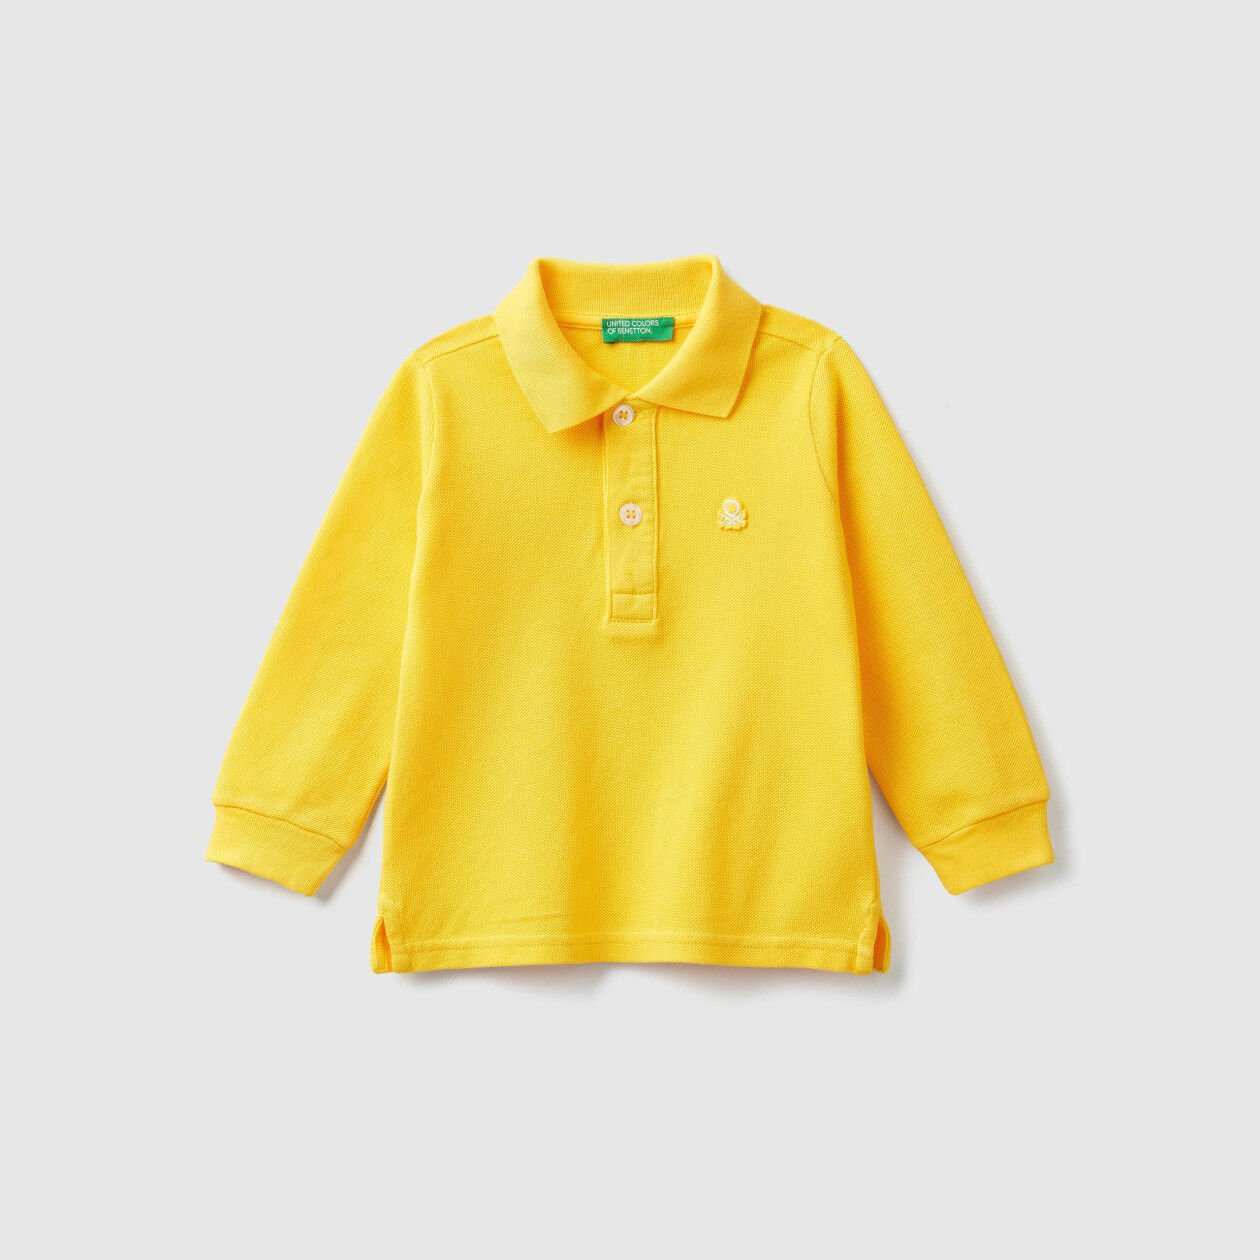 100% organic cotton polo